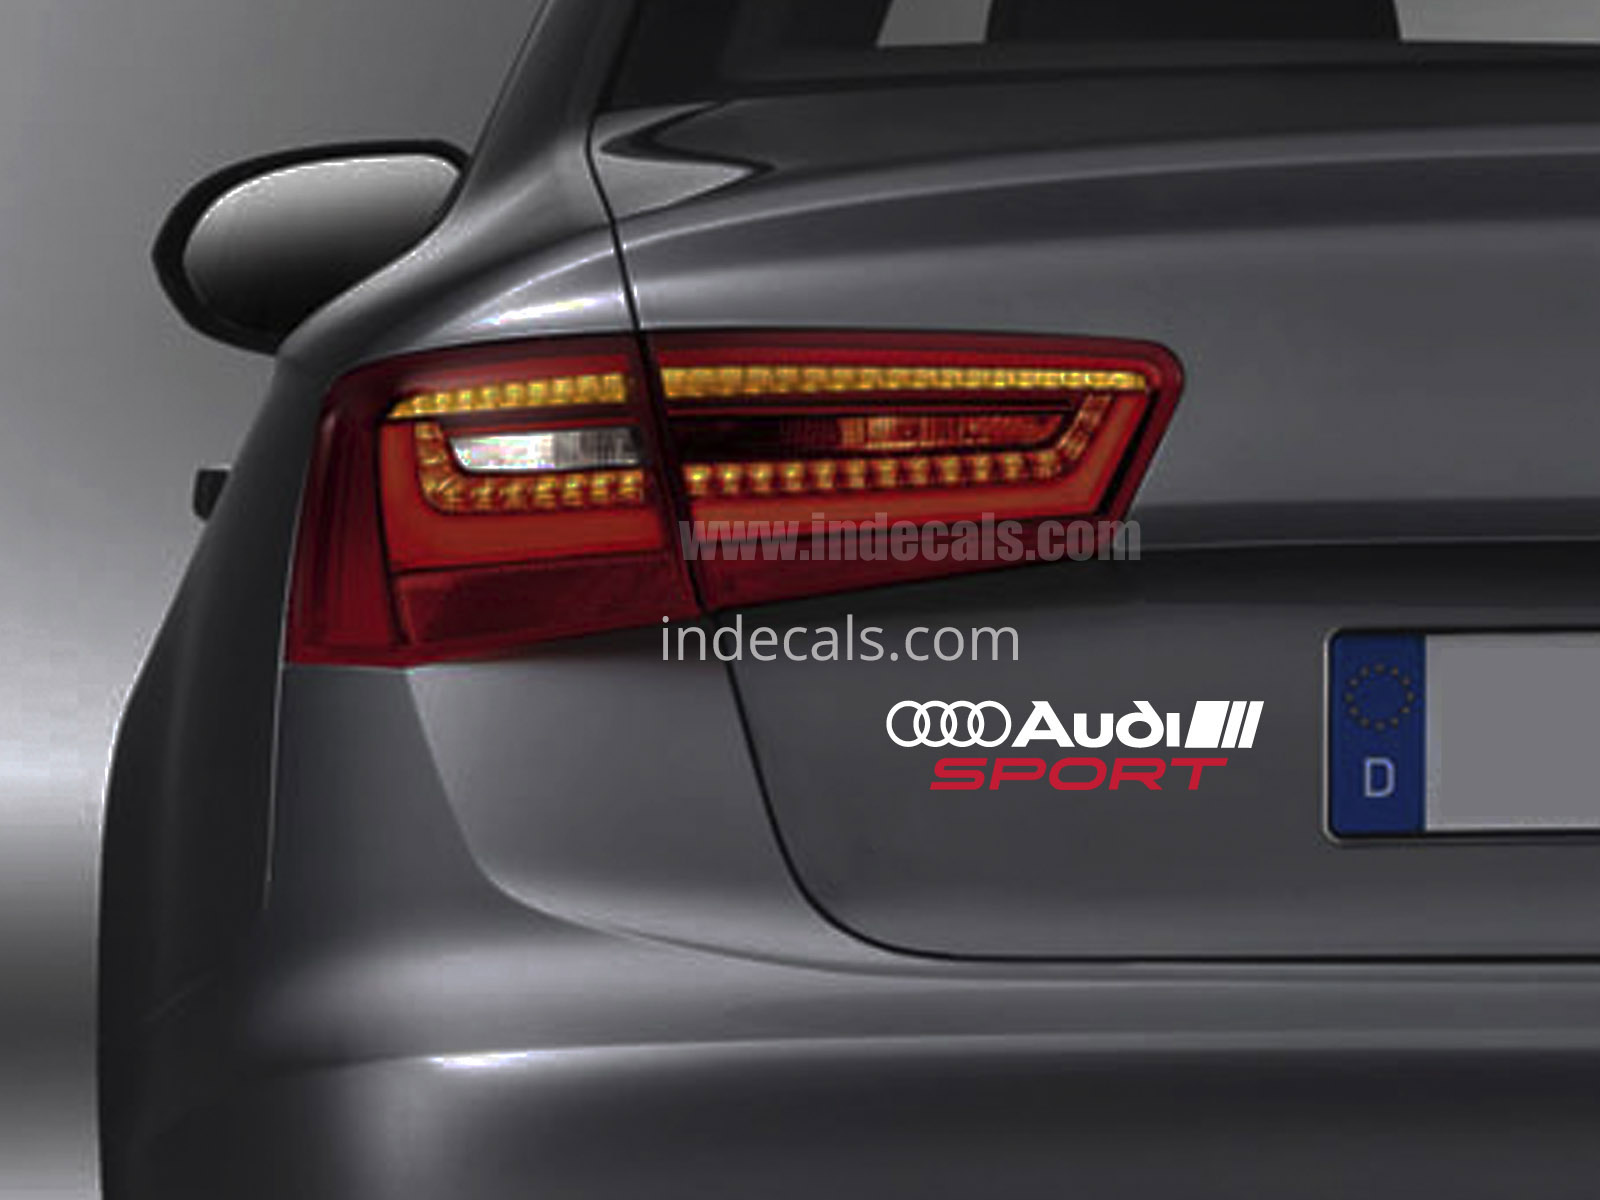 1 x Audi Sports Sticker for Trunk - White & Red